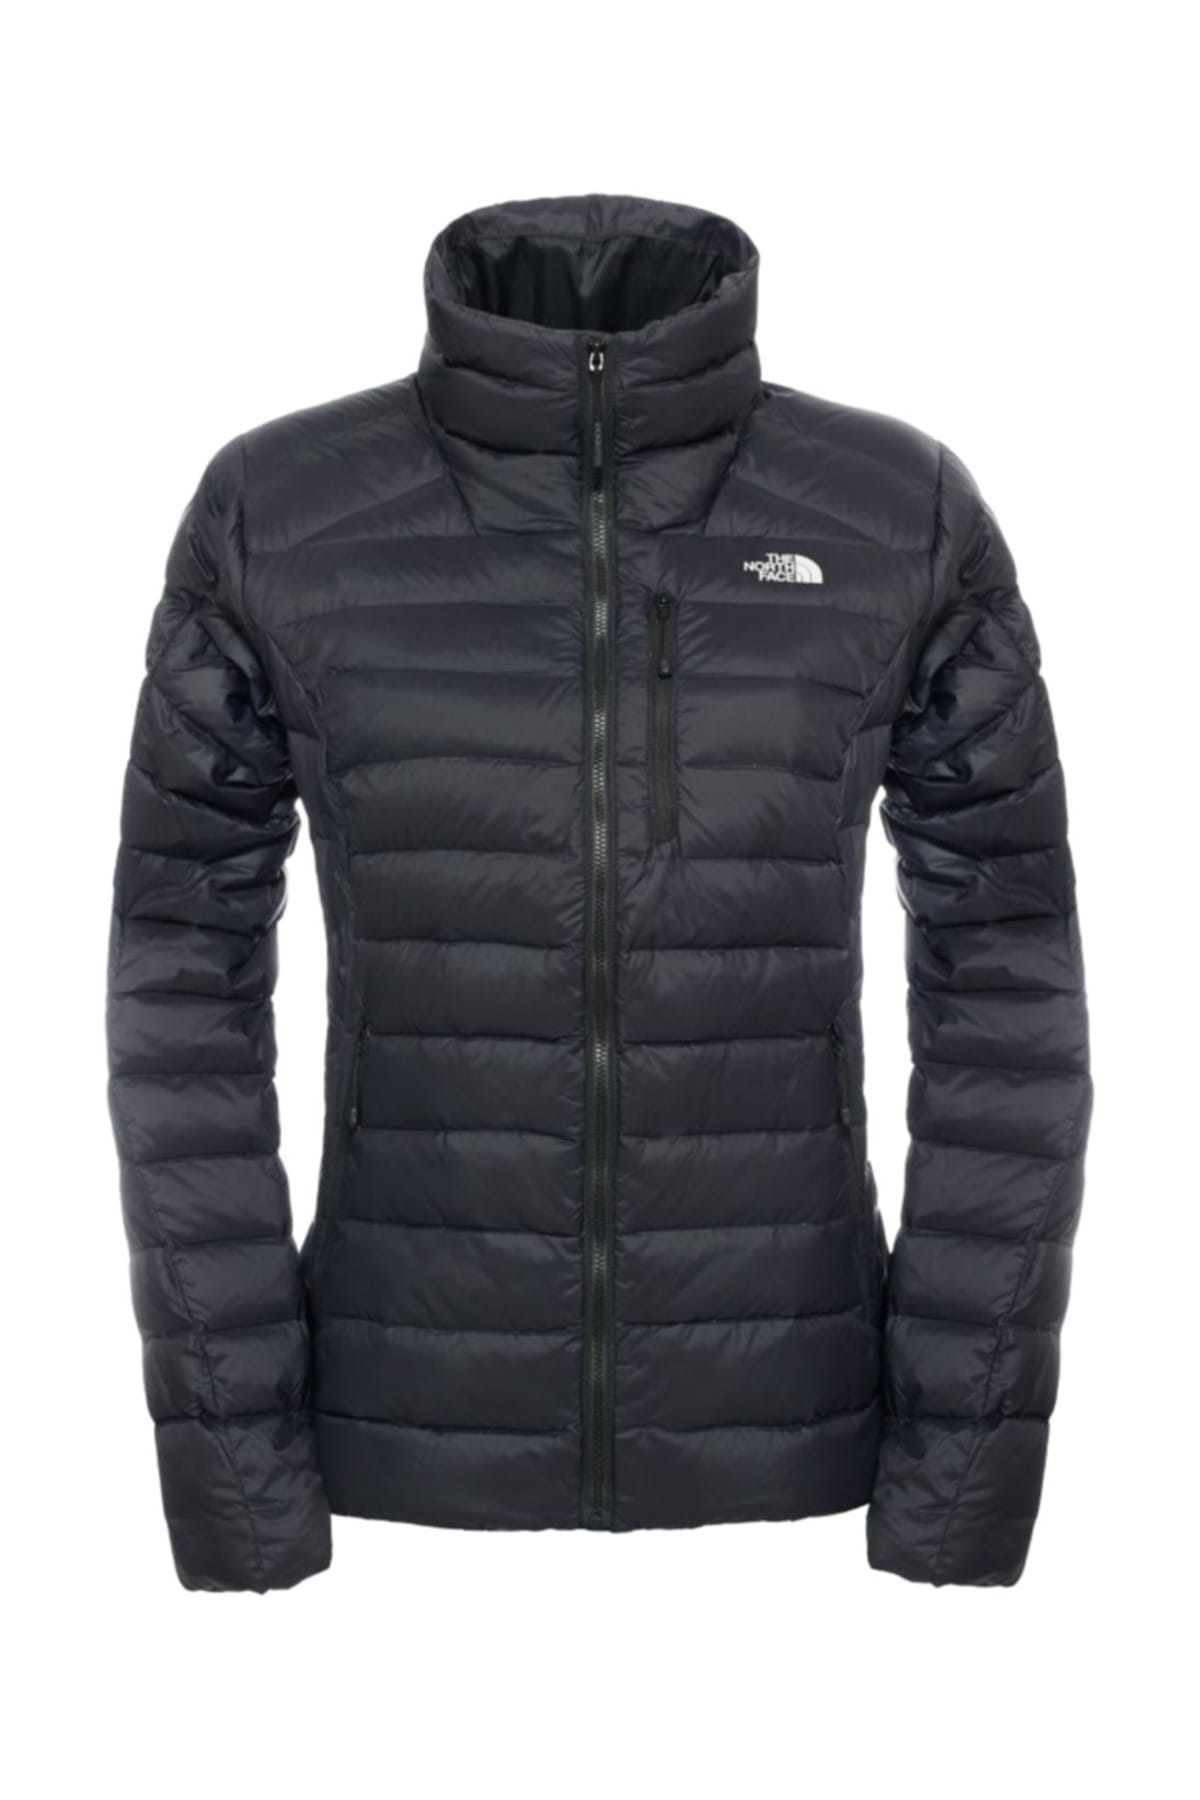 The North Face The North Face – W Morph Jacket Bayan Mont – 823.22 TL